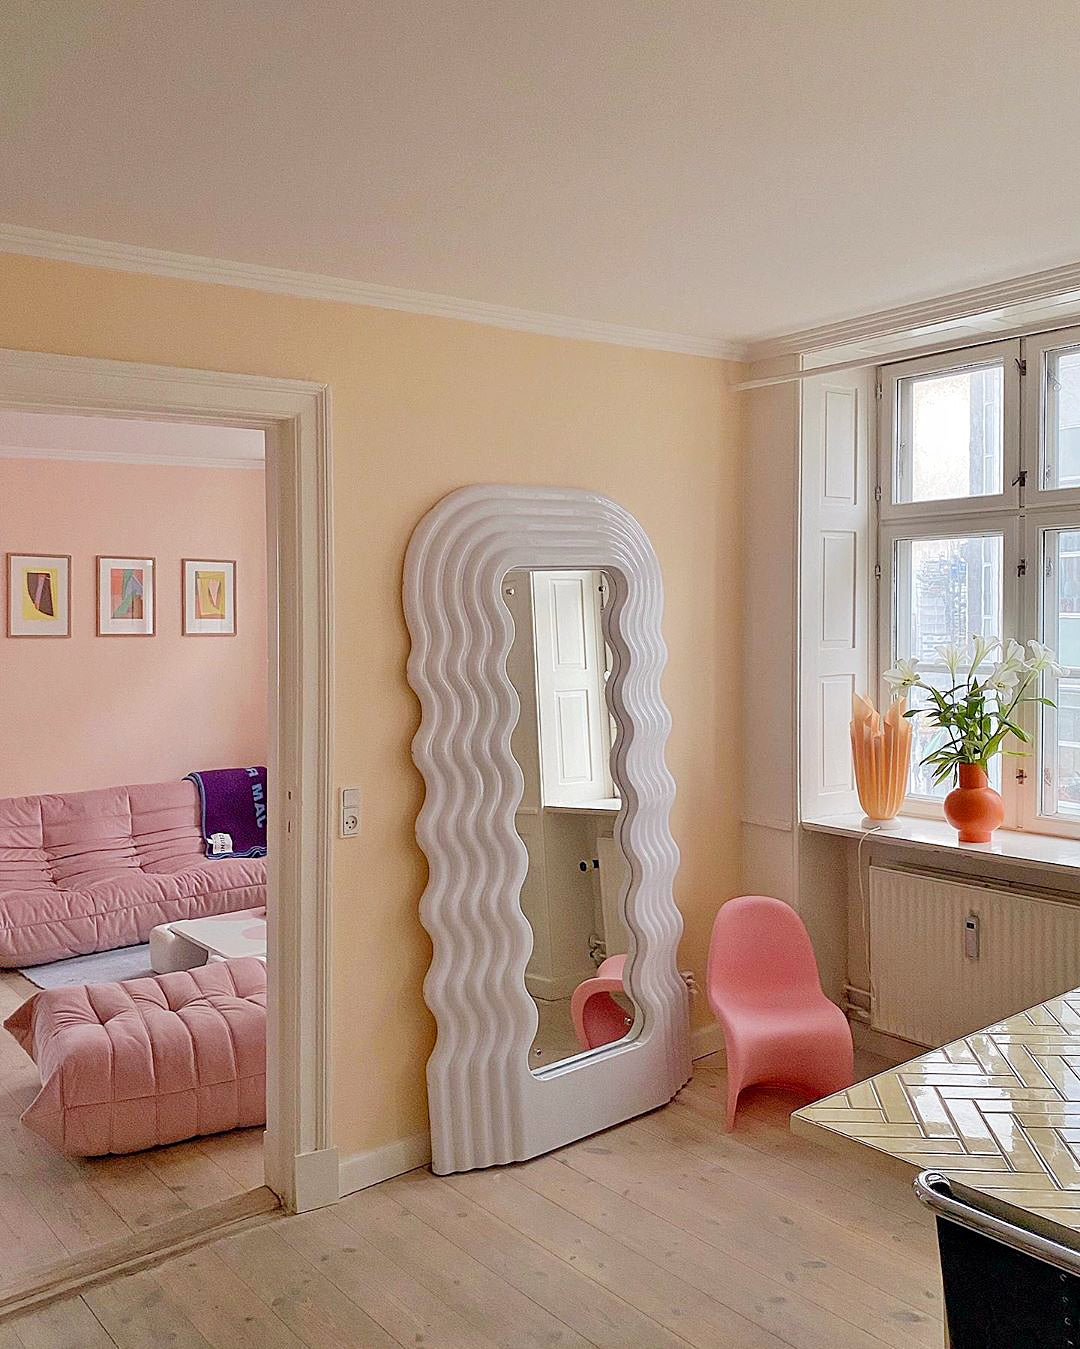 Peach-toned room with ultrafragola mirror